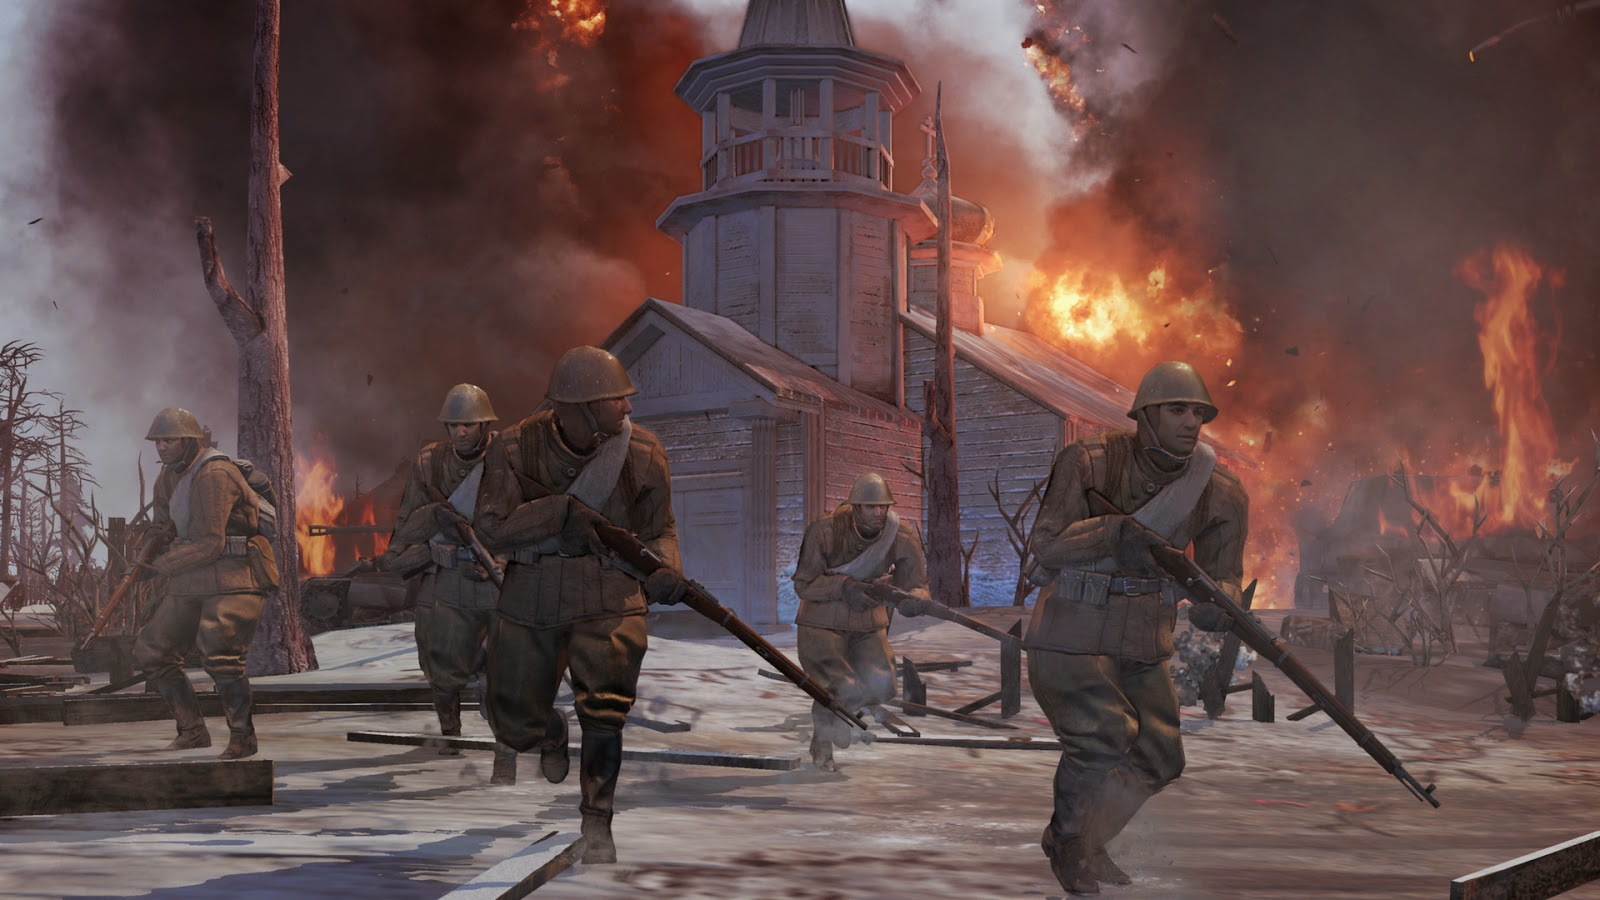 2013 company of heroes - photo #3